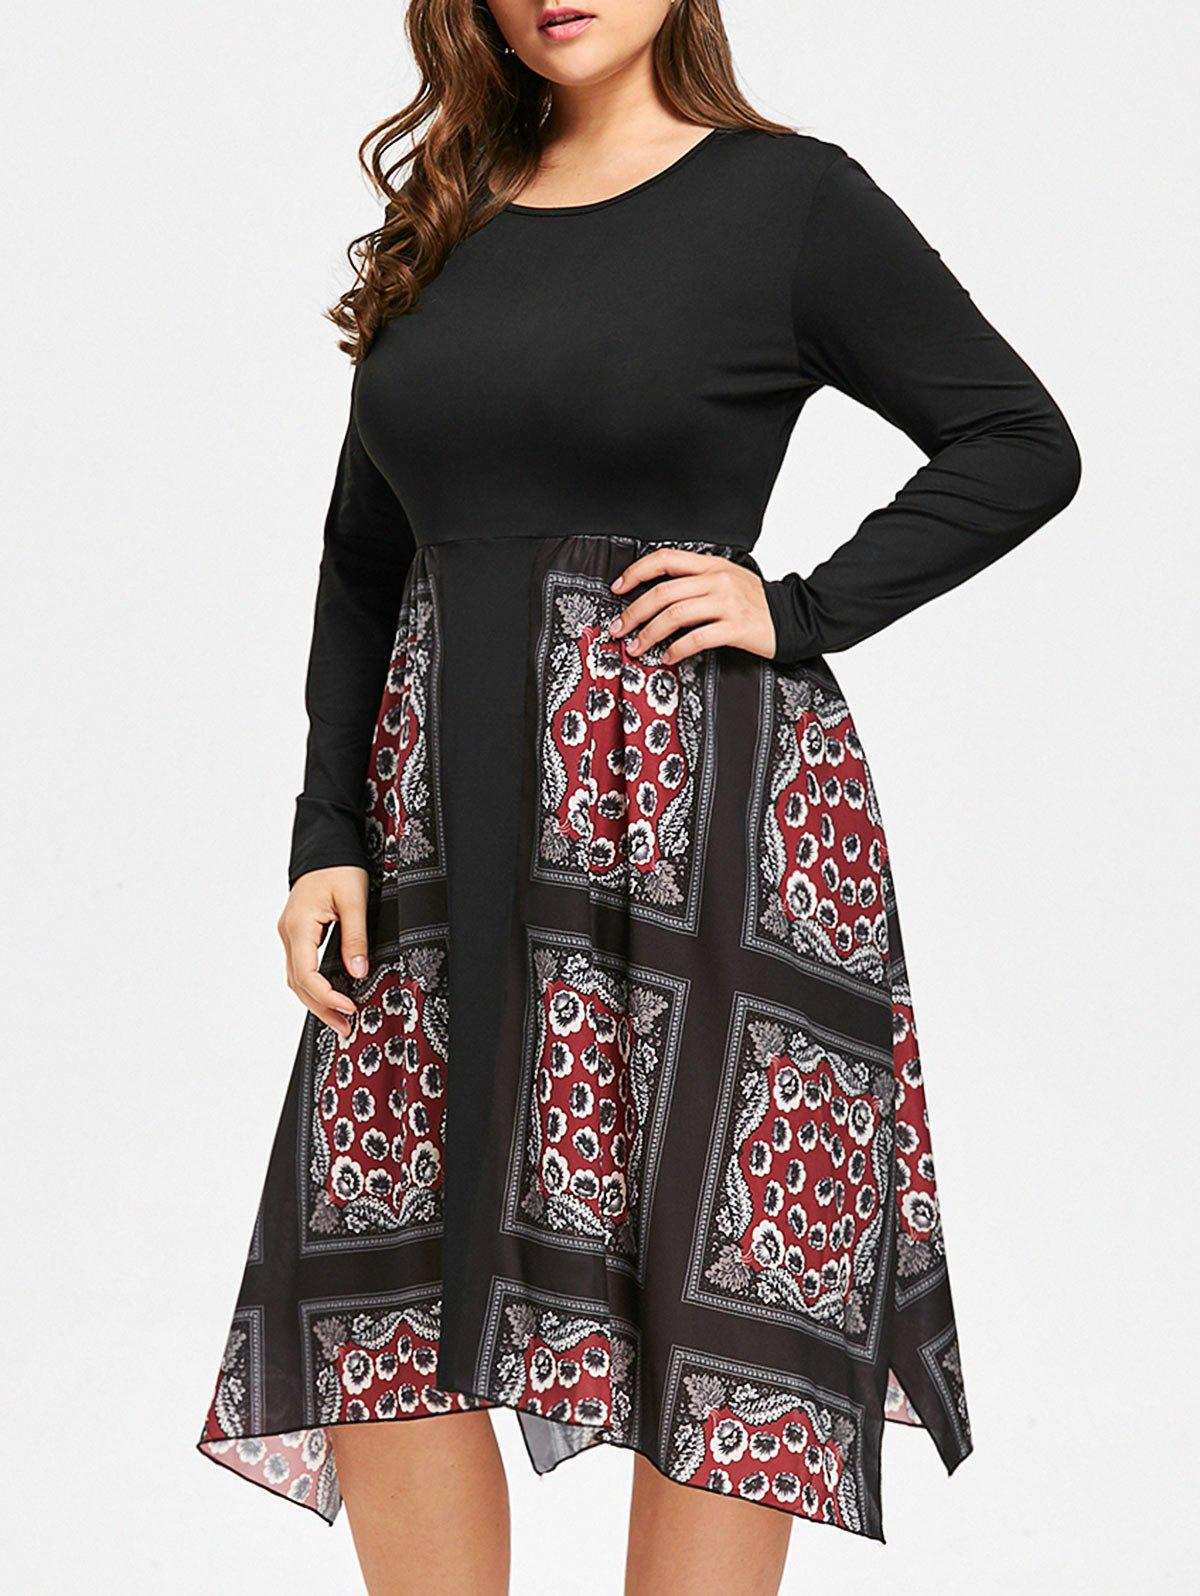 Floral Print Handkerchief Plus Size DressWOMEN<br><br>Size: 4XL; Color: BLACK; Style: Casual; Material: Cotton,Polyester; Silhouette: A-Line; Dresses Length: Mid-Calf; Neckline: Round Collar; Sleeve Length: Long Sleeves; Pattern Type: Floral; With Belt: No; Season: Fall; Weight: 0.3500kg; Package Contents: 1 x Dress;